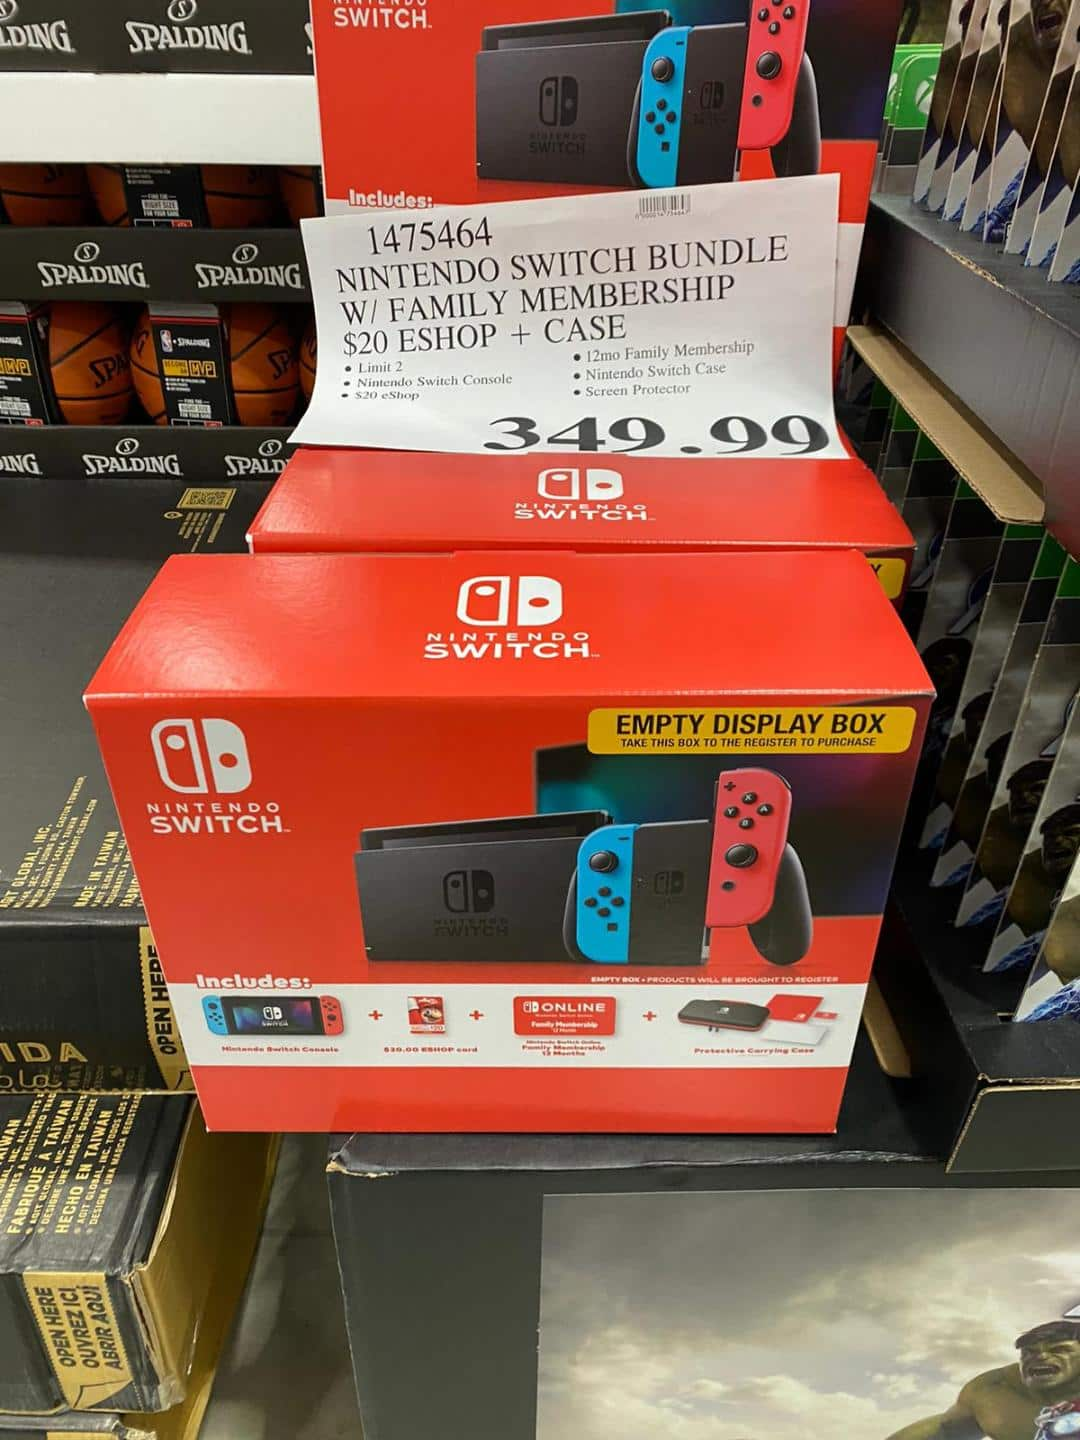 Nintendo Switch Bundle W Family Membership 20 Eshop Case 350 Costco B M Nintendo switch hardware is selling out at various retail locations in the u.s., but more systems are on the way, nintendo explained in a statement to gamespot. nintendo switch bundle w family